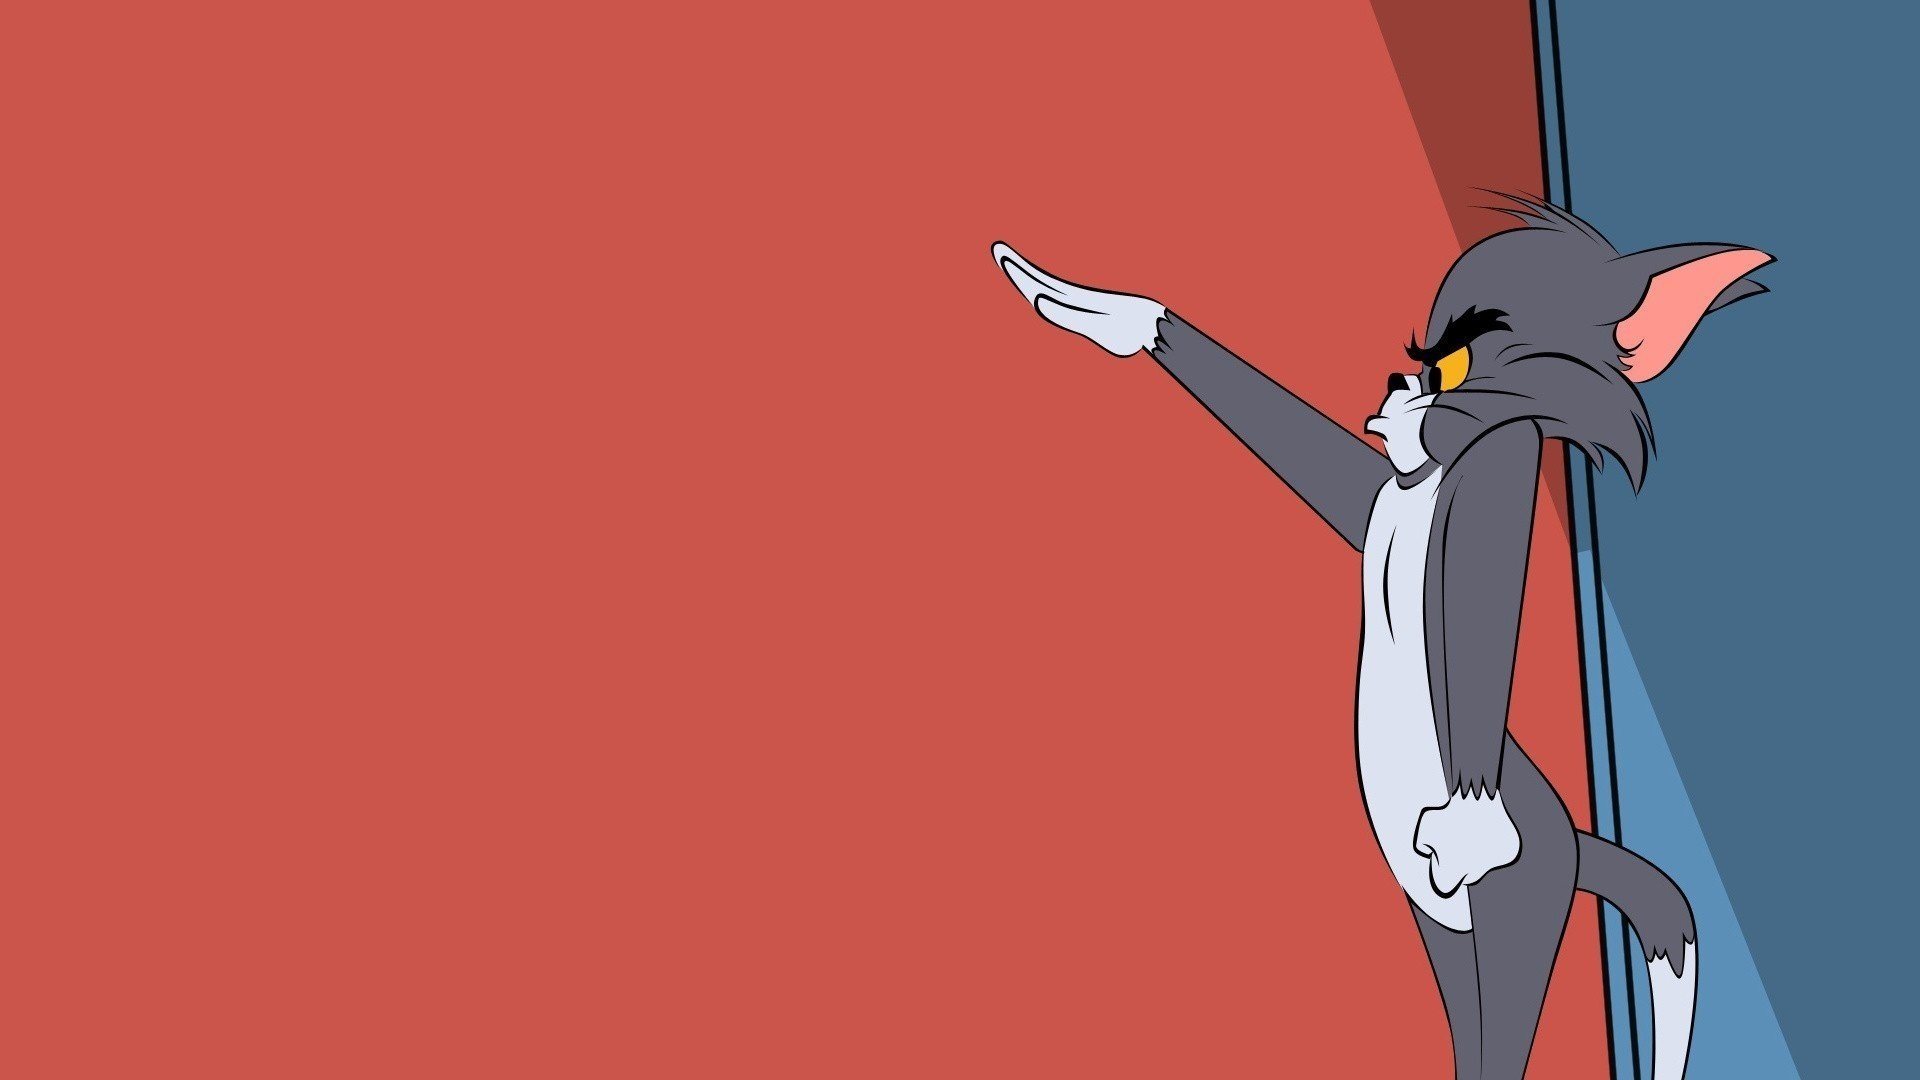 Tom And Jerry wallpapers 1920x1080 Full HD (1080p) desktop ...